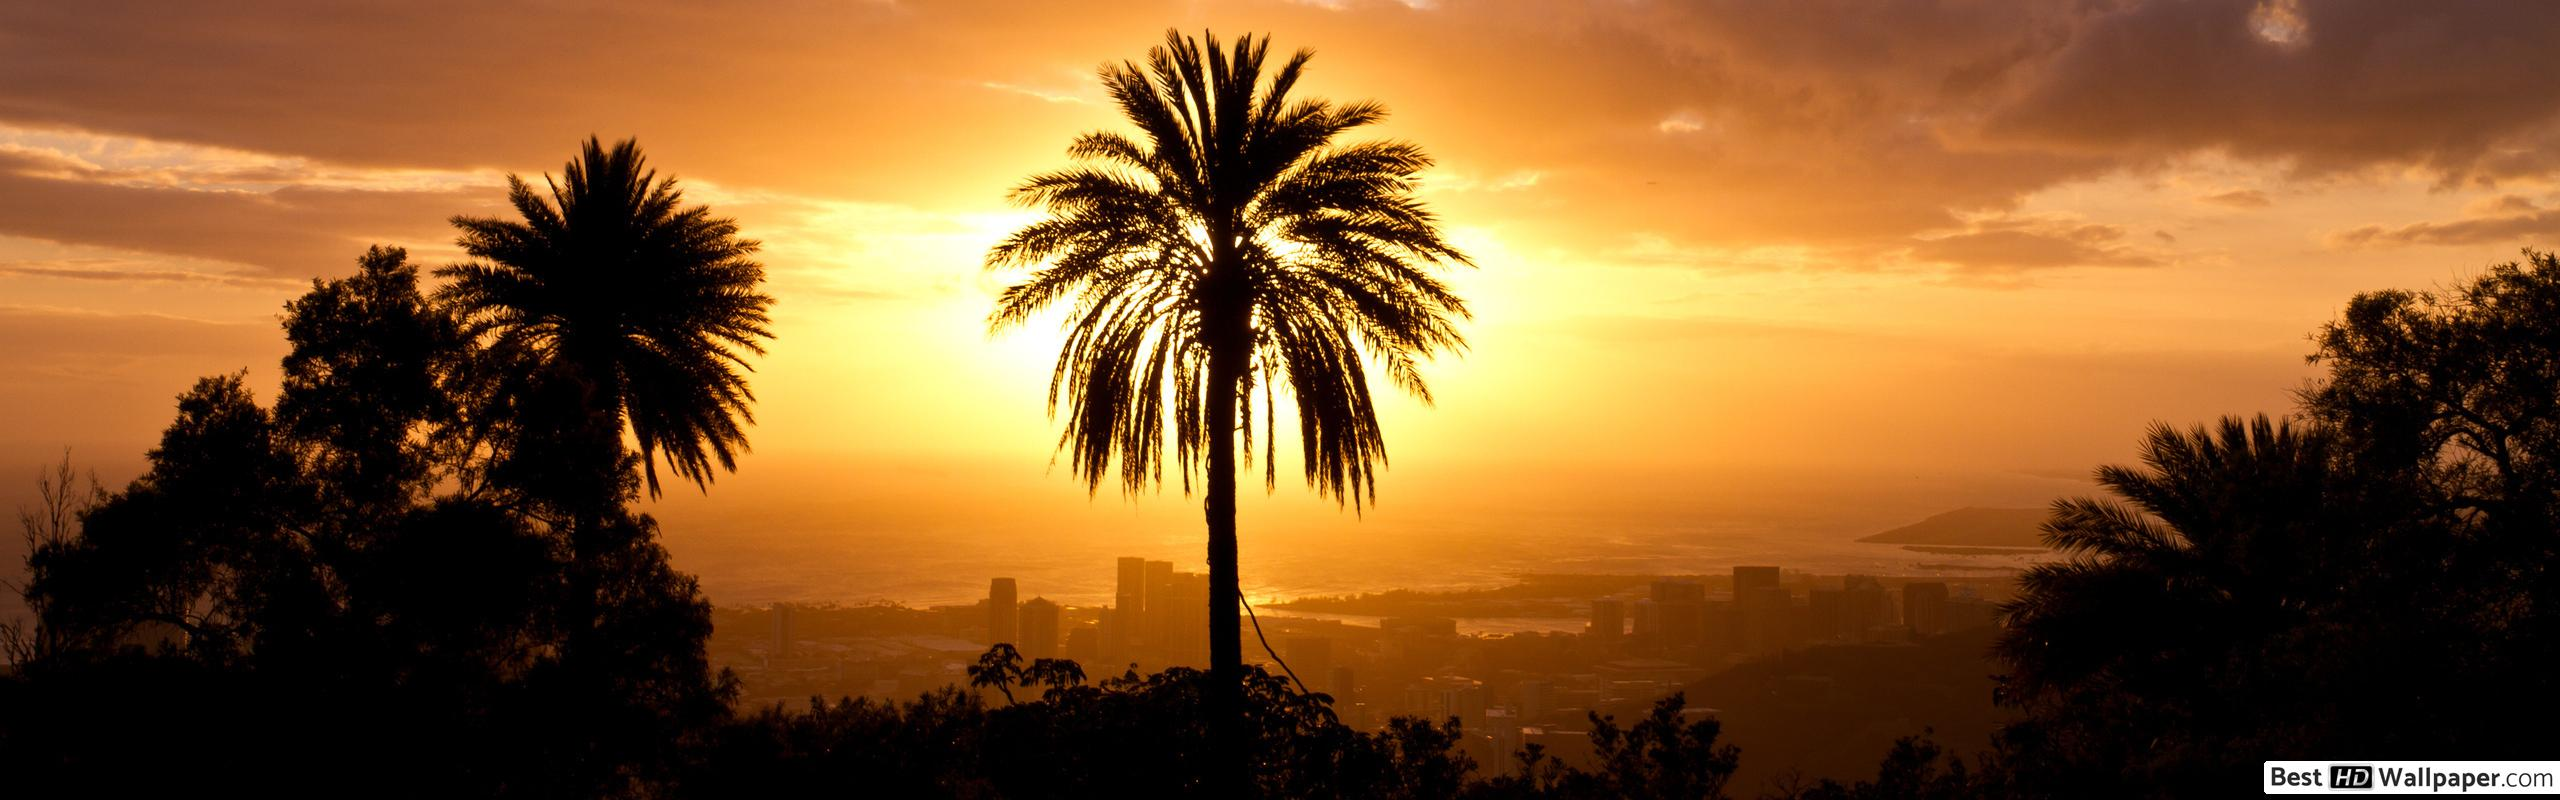 Palm Tree Wallpapers For Macbook Air - HD Wallpaper